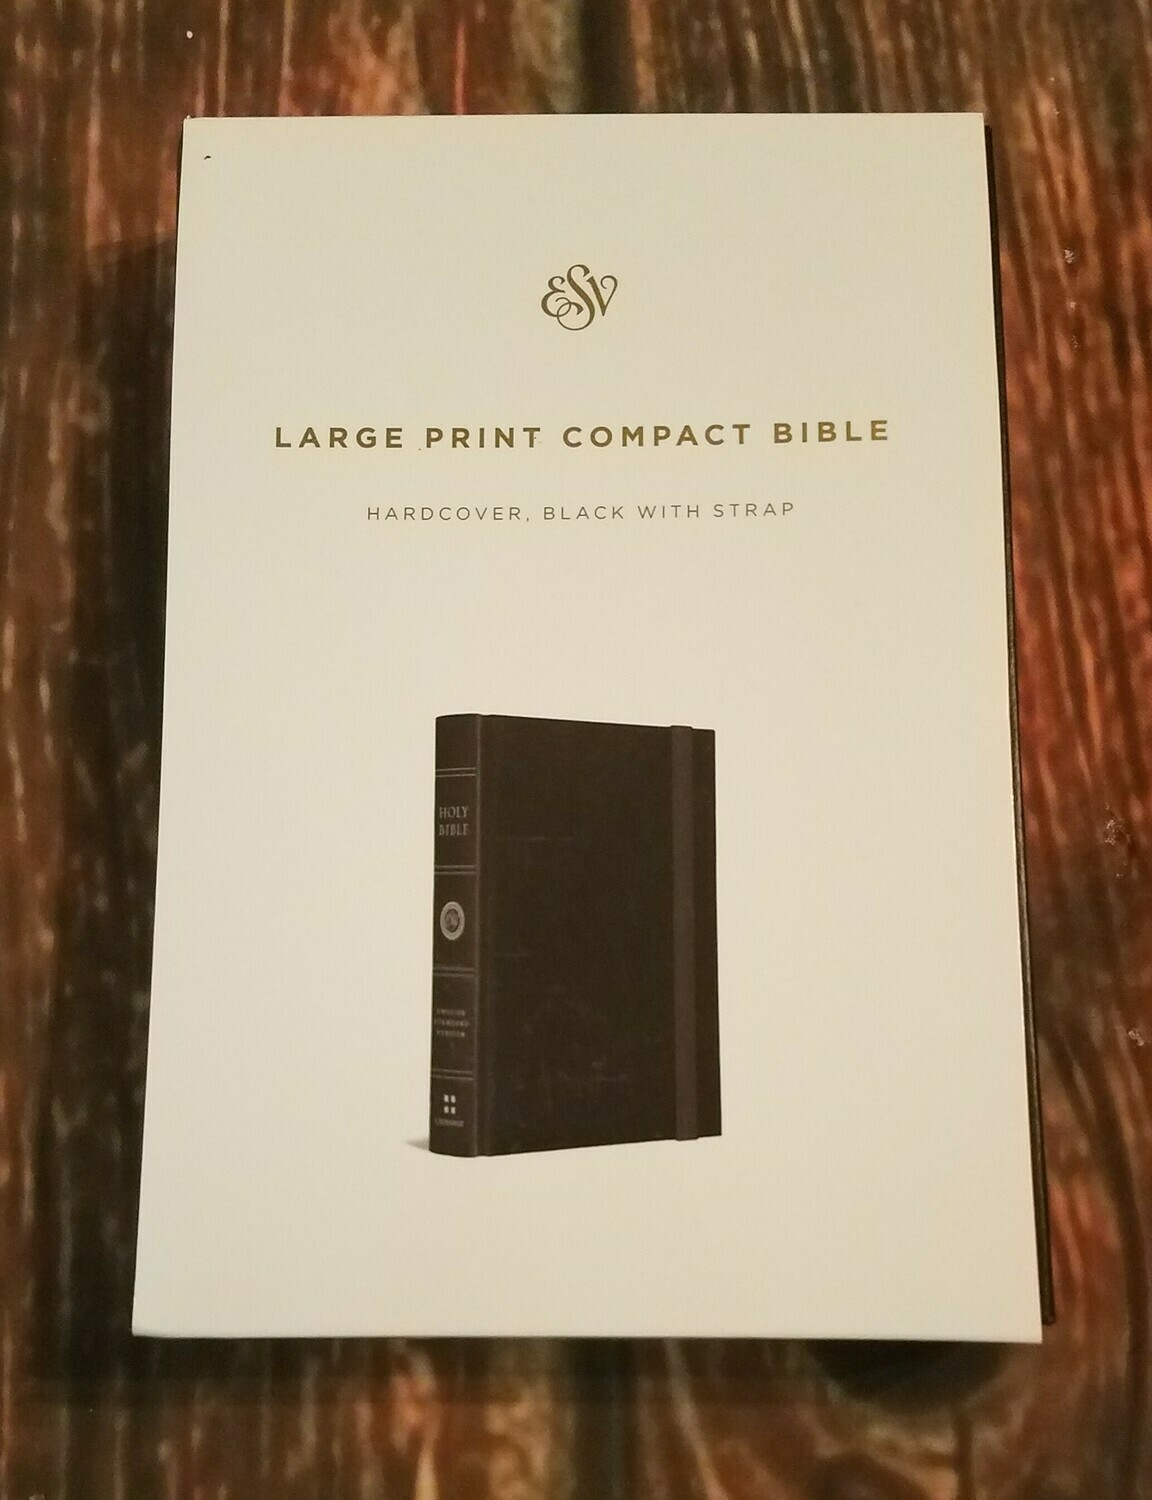 ESV Large Print Compact Bible - Black Leather with Strap